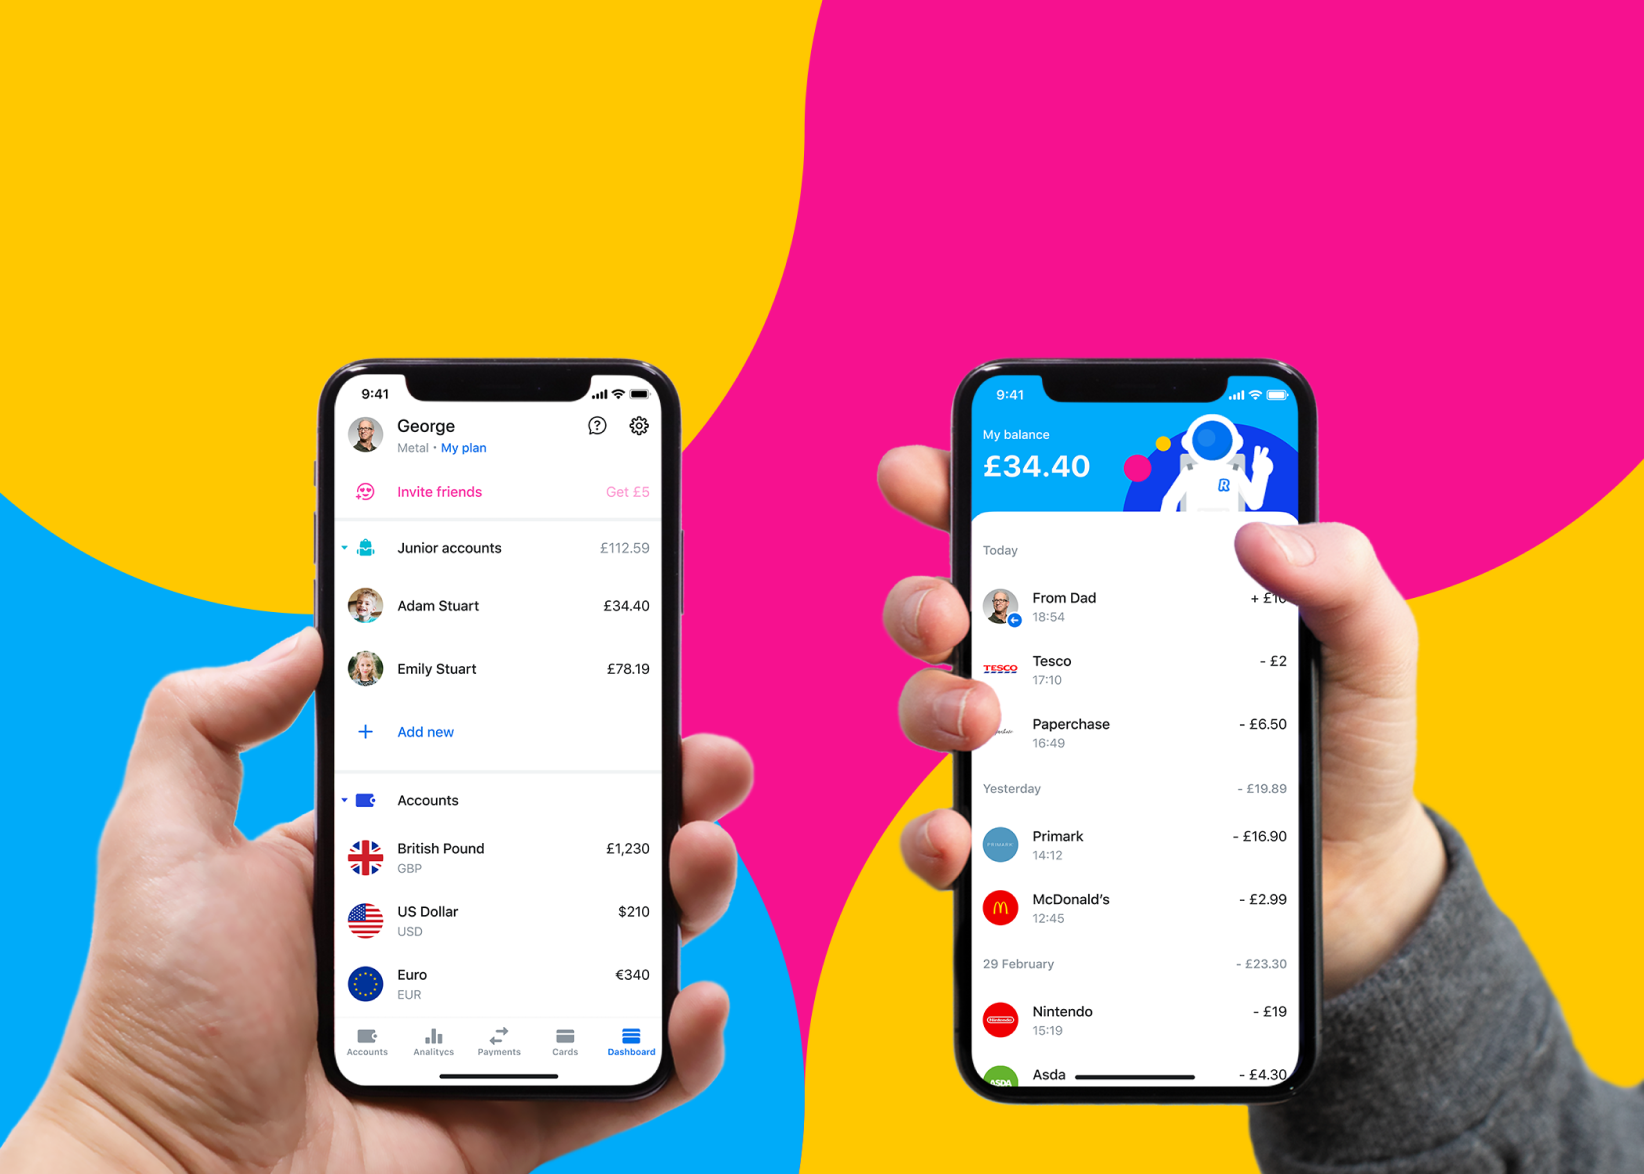 Virtual Banking App Revolut Launches in the US